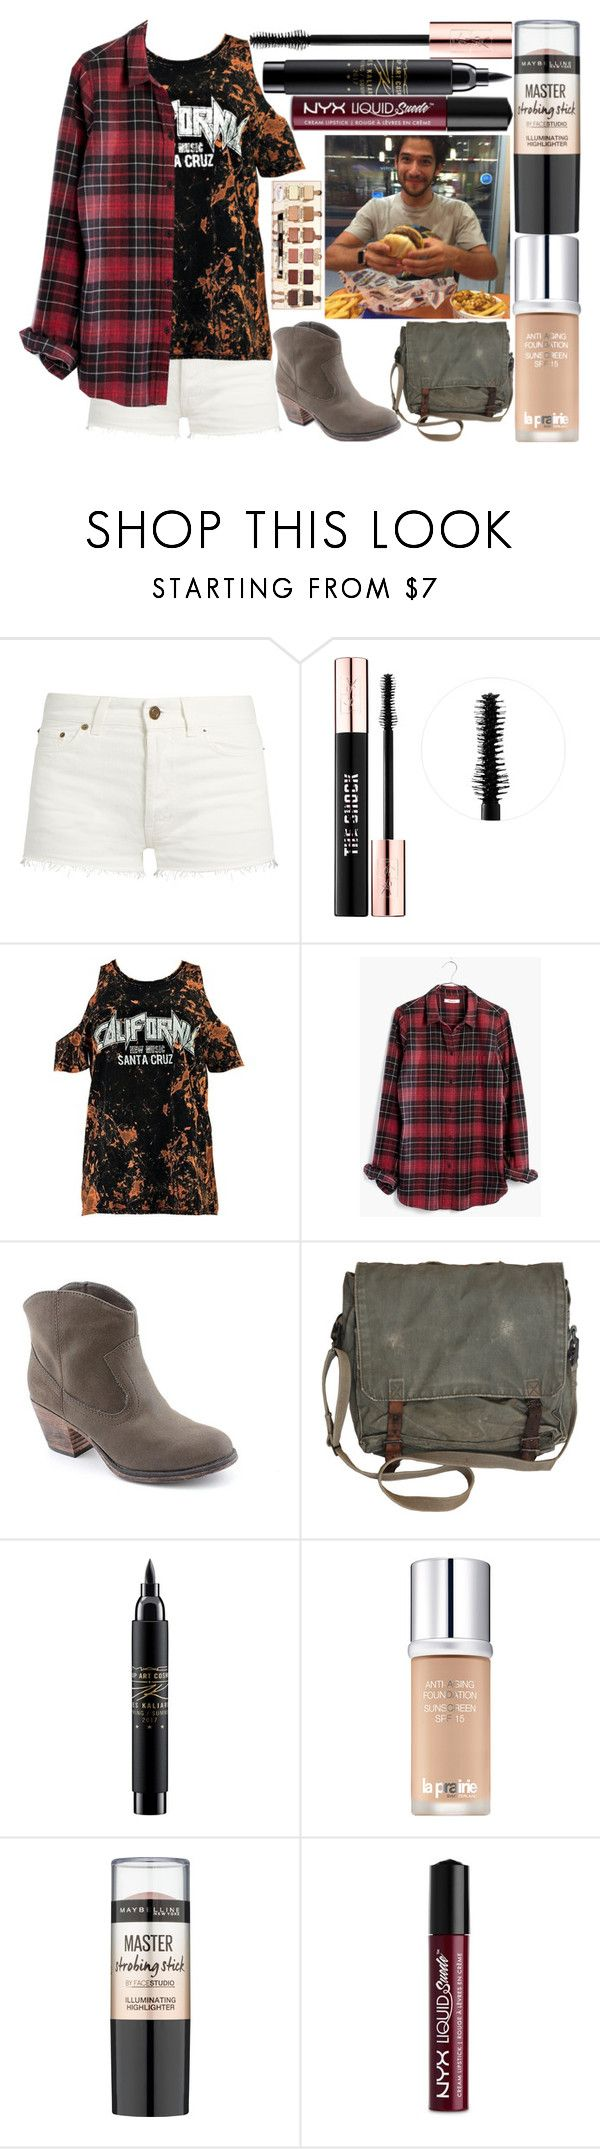 """""""getting burgers w/ tyler posey"""" by silent-killer ❤ liked on Polyvore featuring Yves Saint Laurent, Boohoo, Madewell, Rocket Dog, MAC Cosmetics, La Prairie, Maybelline and NYX"""